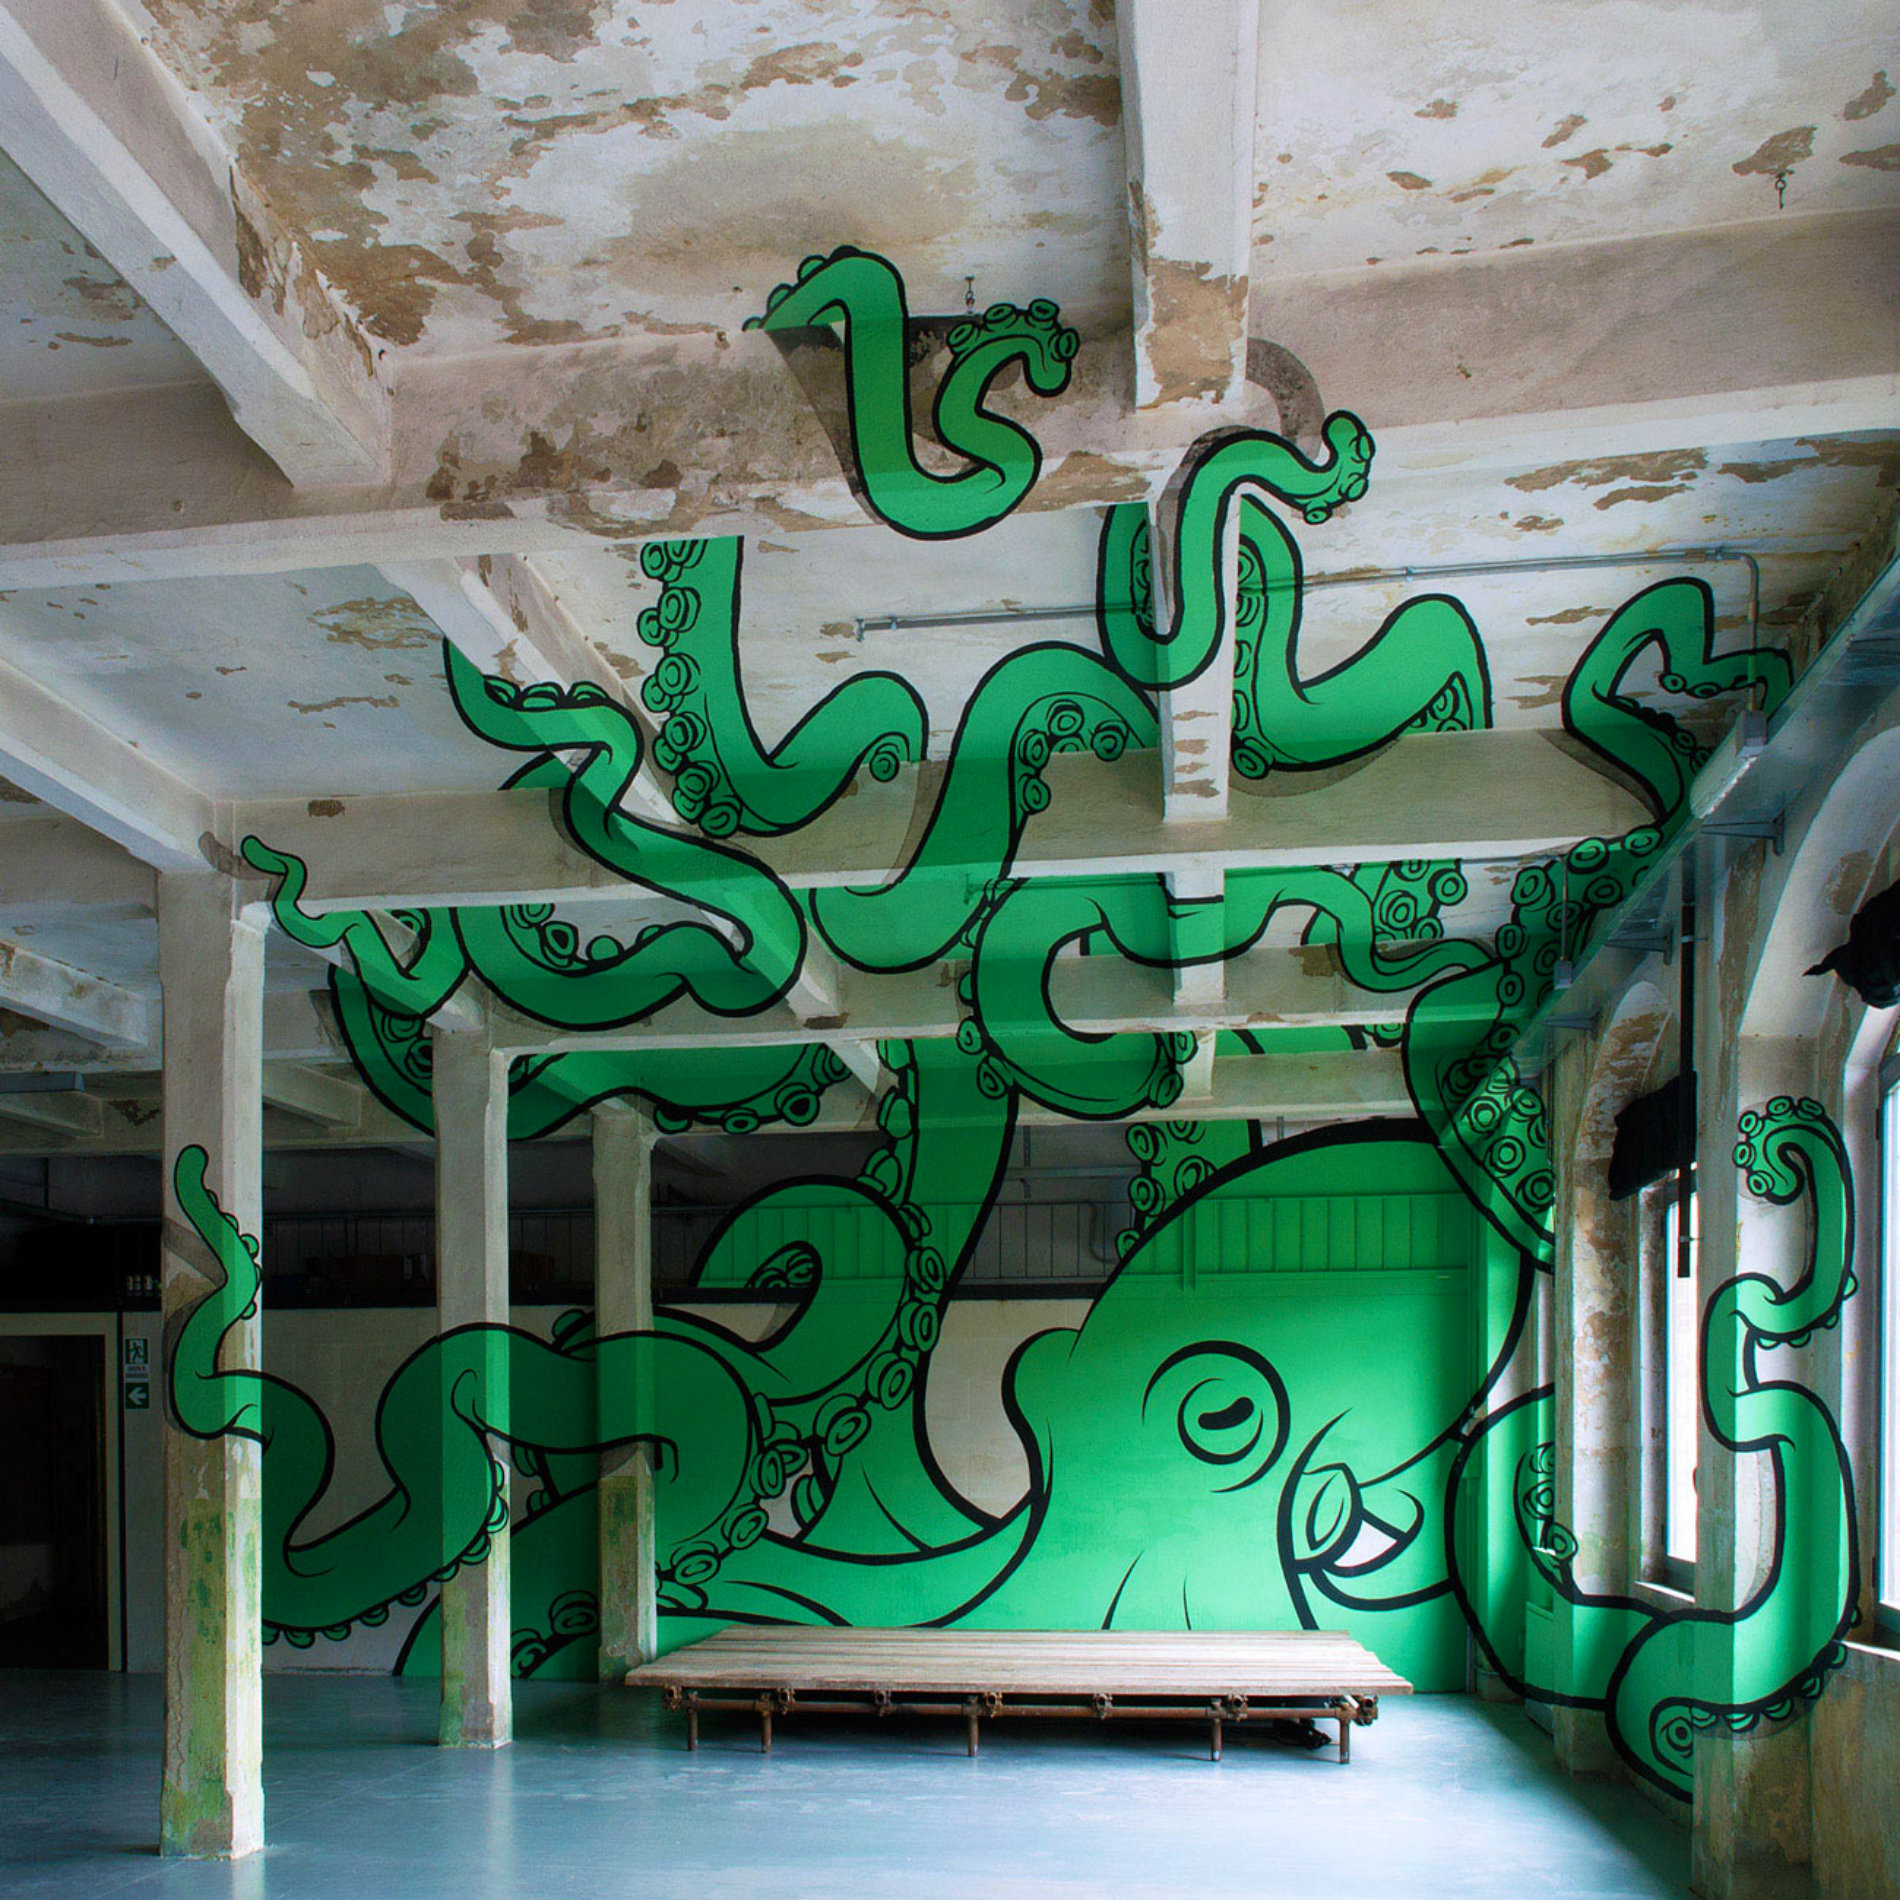 Giant Octopus: Anamorphic Graffiti by Truly Design